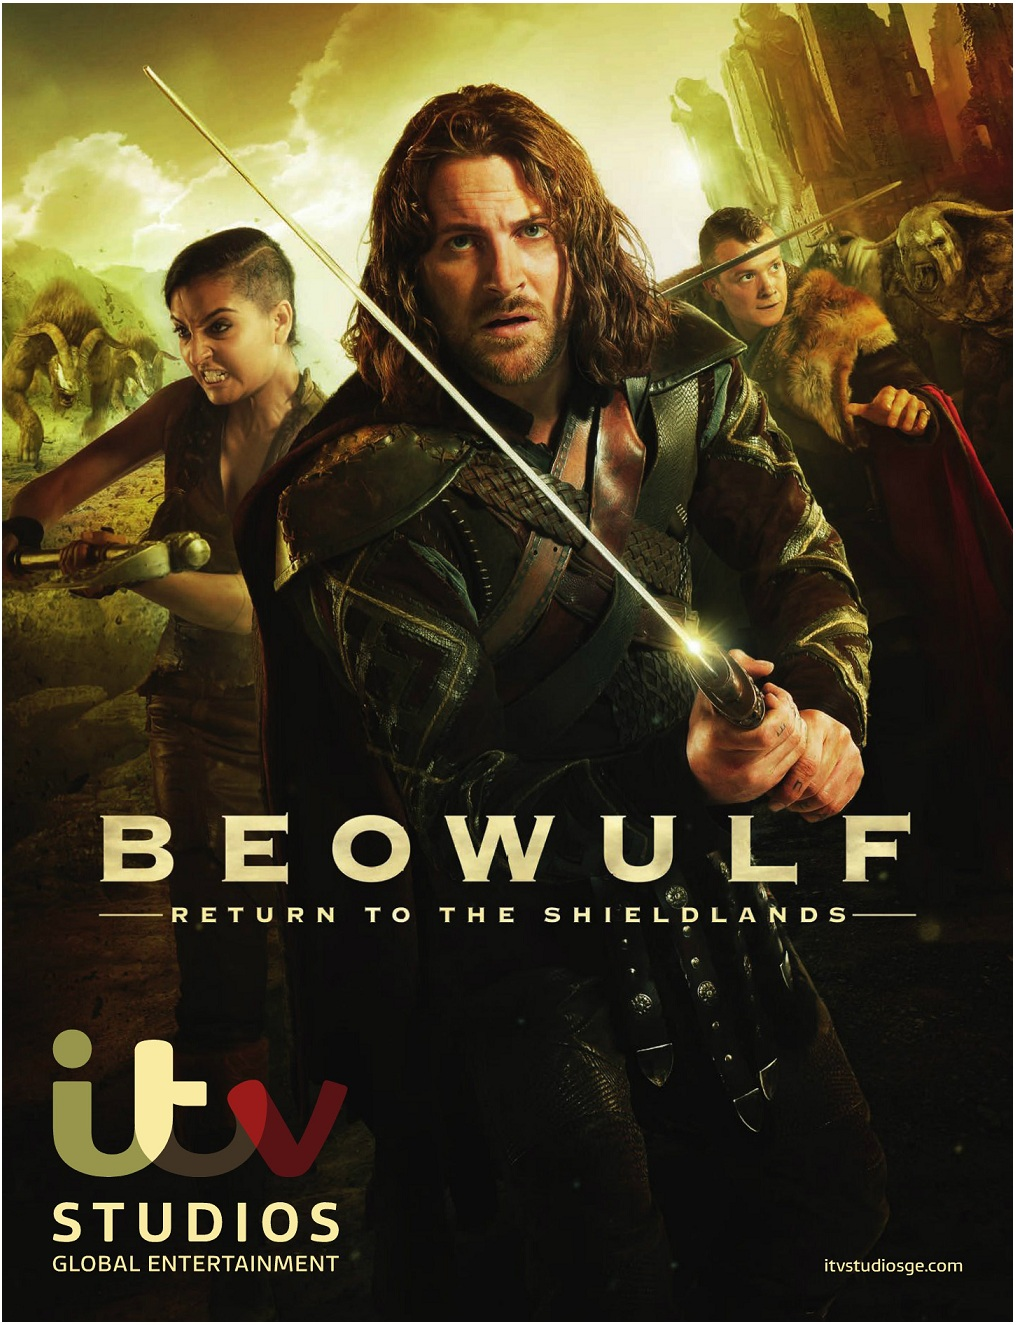 beowulf as epic Beowulf (/ ˈ b eɪ ə w ʊ l f / old english: [ˈbeːo̯wulf]) is an old english epic story consisting of 3,182 alliterative lines it may be the oldest surviving long story in old english and is commonly cited as one of the most important works of old english literature.